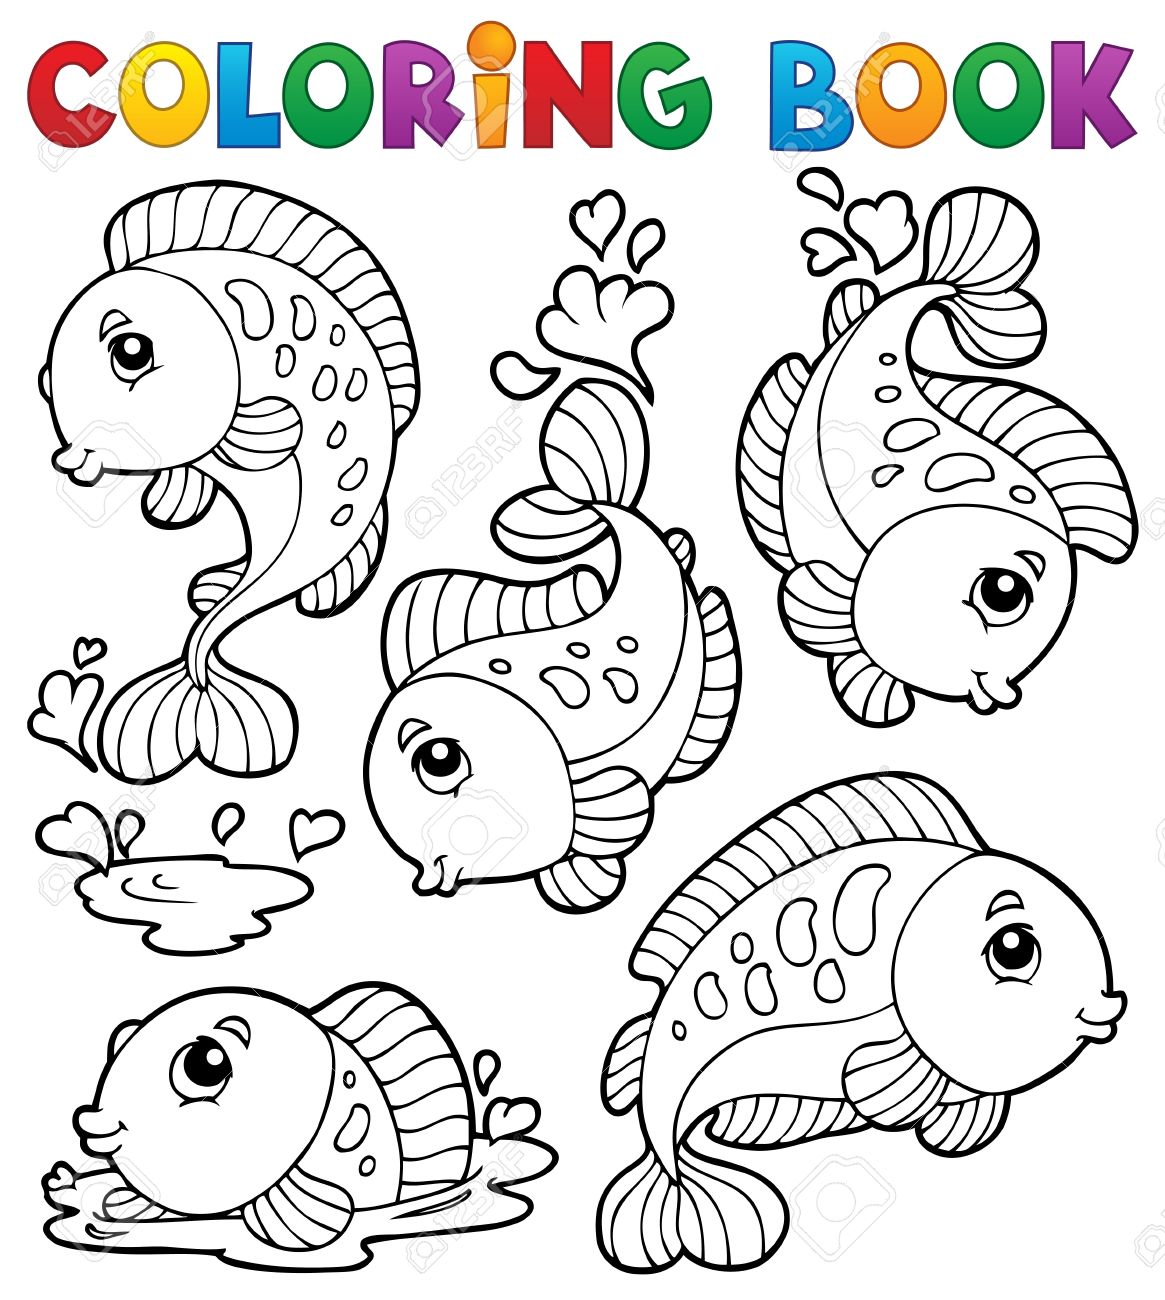 Coloring Book With Fish Theme 1 - Vector Illustration Royalty Free ...